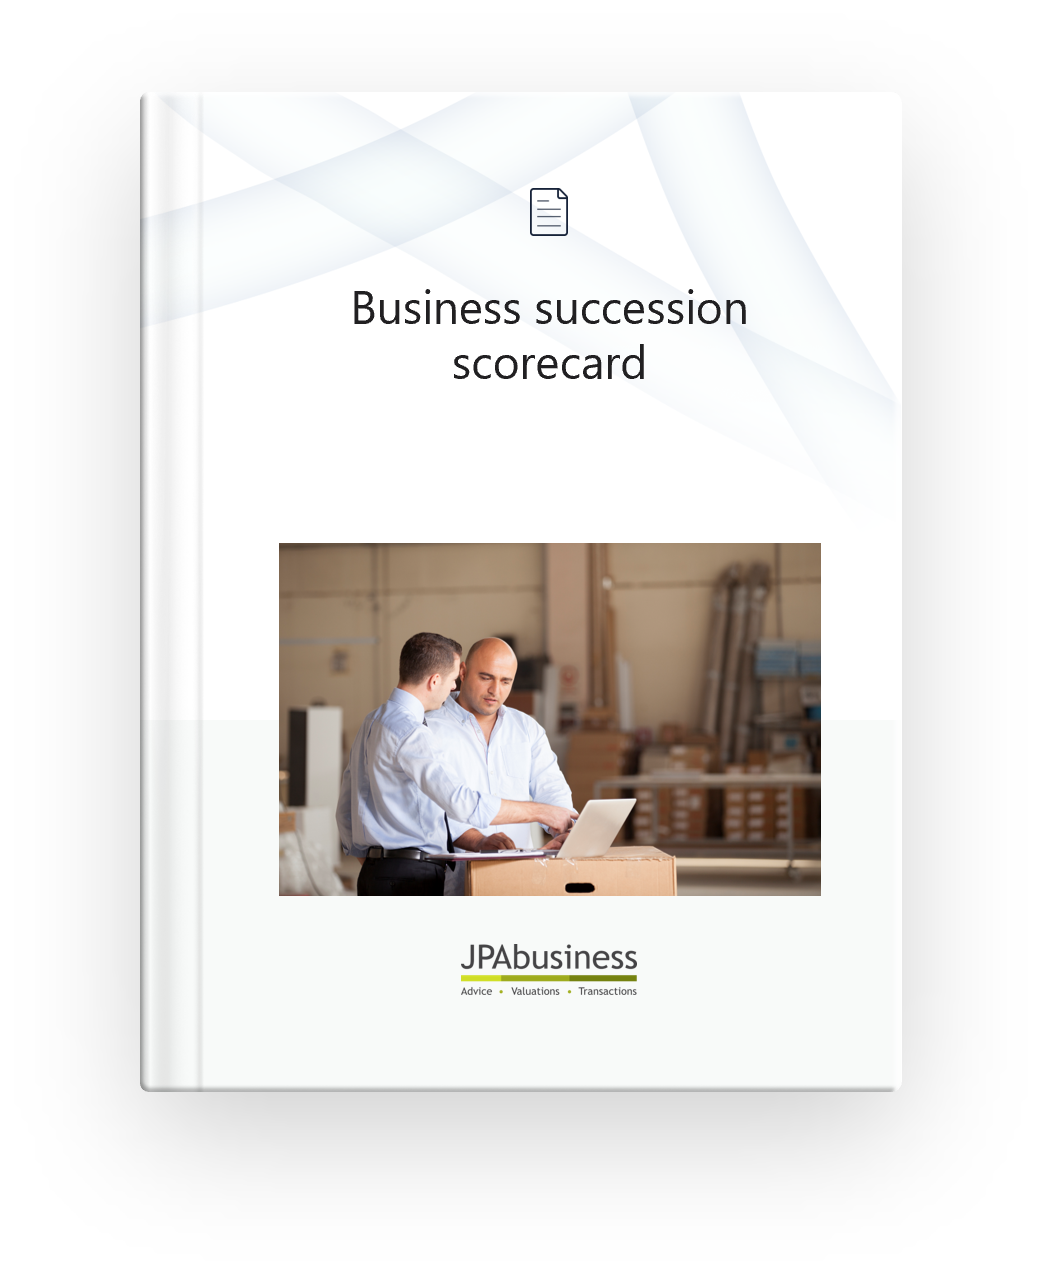 The_Business_Succession_Scorecard